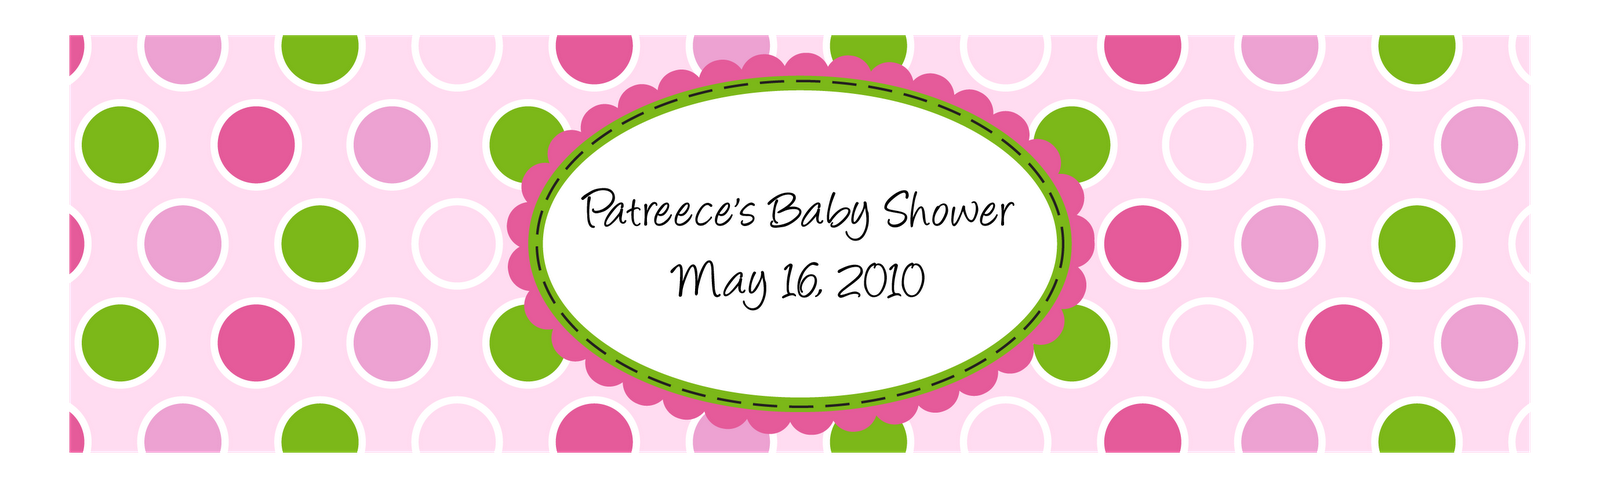 baby shower label template for favors - custom printables april 2010